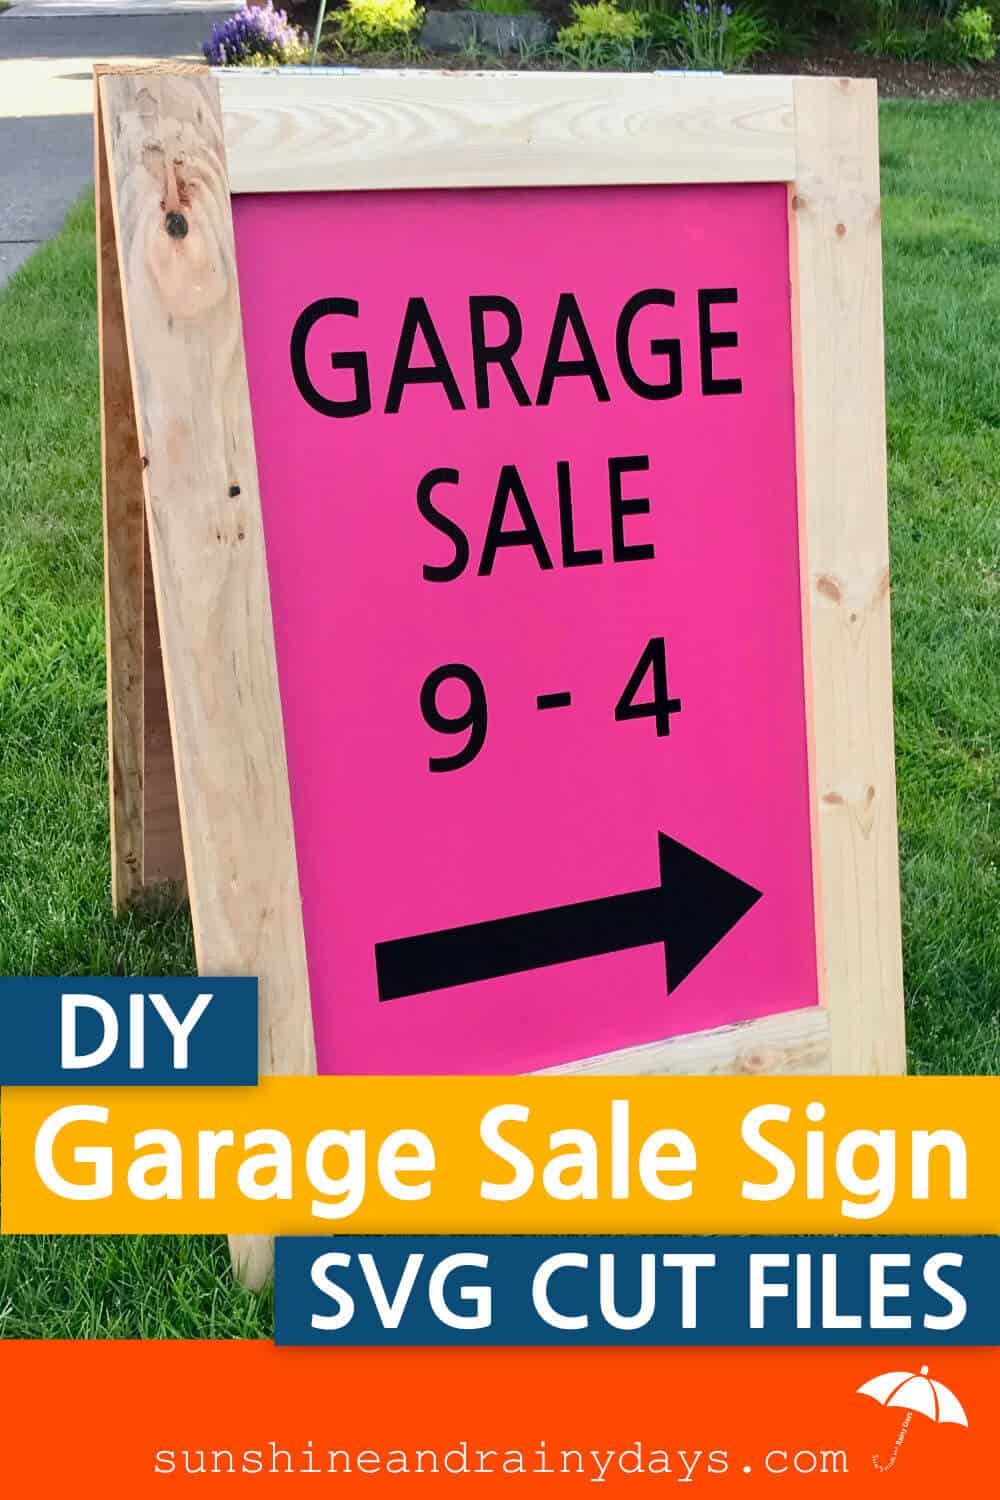 SVG Cut Files for Garage Sale Signs